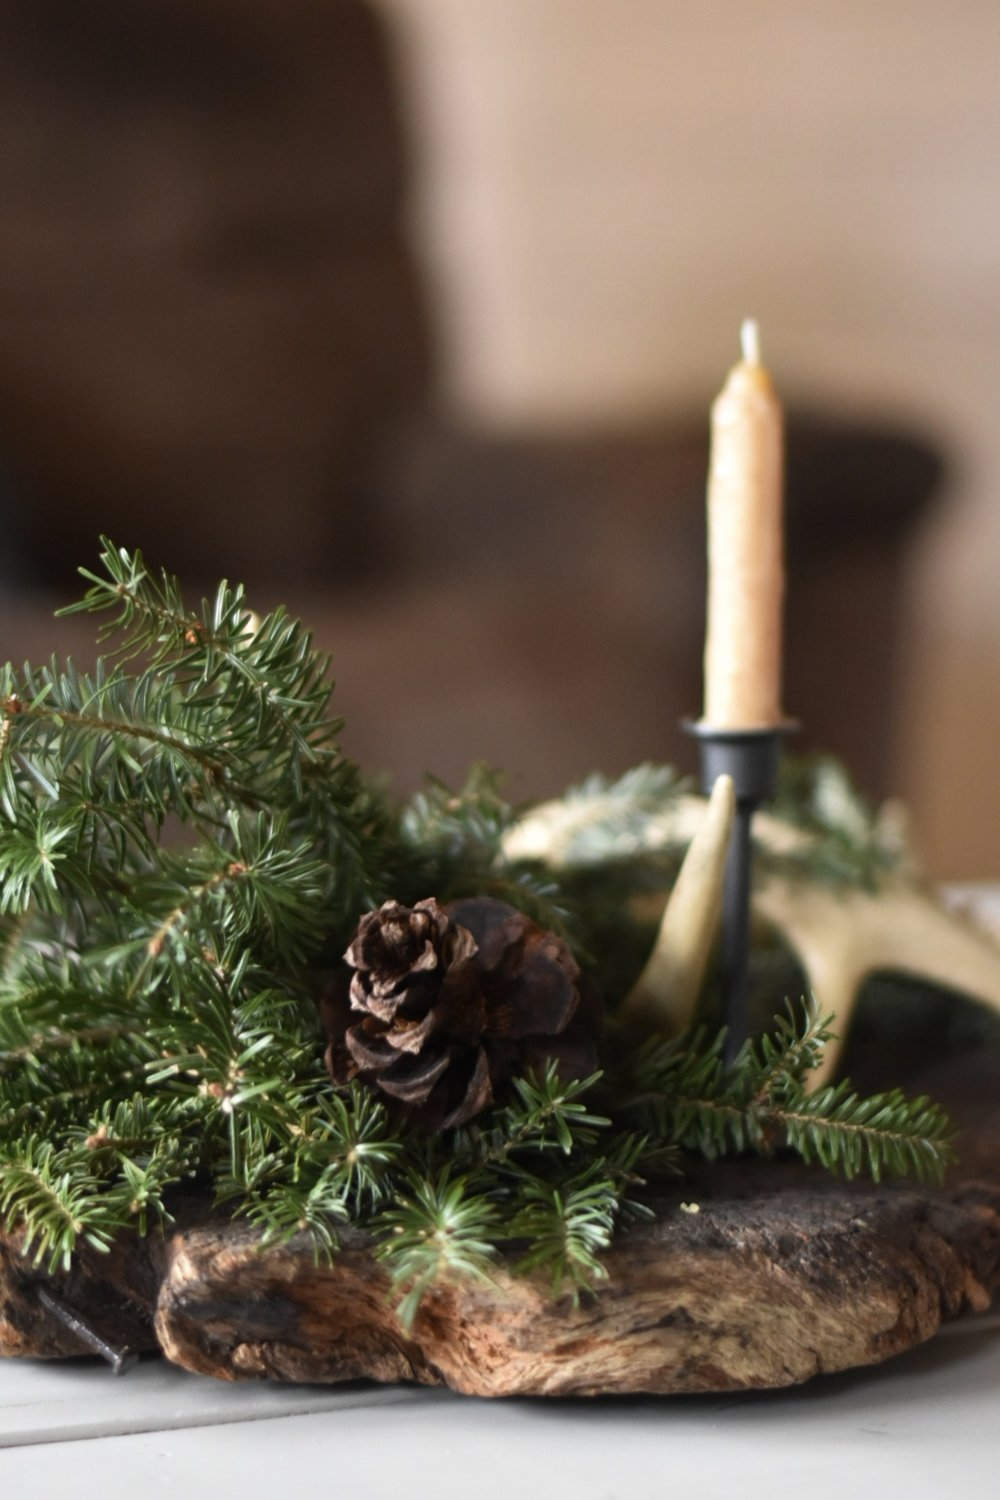 Creating a simle and slow Christmas through traditions, gift giving and decor - Rocky Hedge Farm